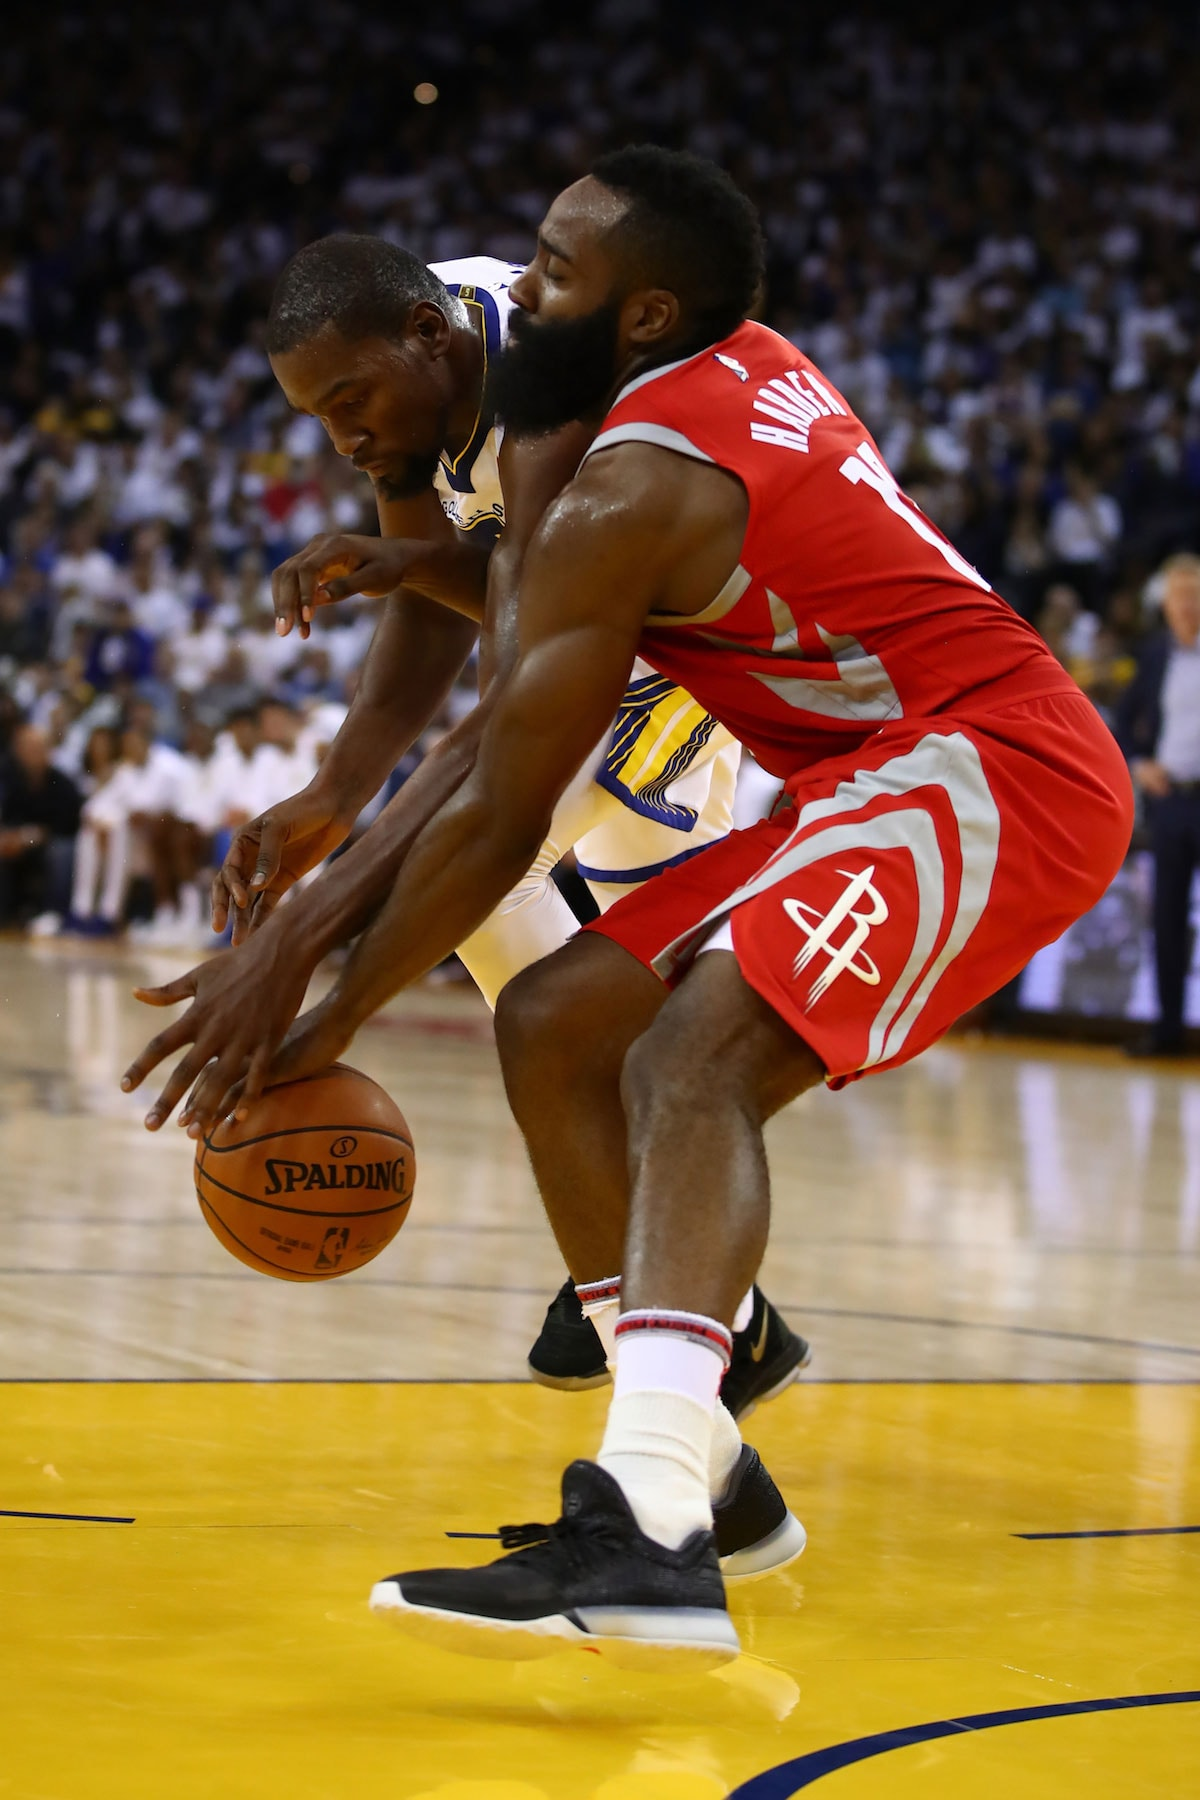 Kevin Durant #35 of the Golden State Warriors defends against James Harden #13 of the Houston Rockets during their NBA game at ORACLE Arena on October 17, 2017 in Oakland, California.